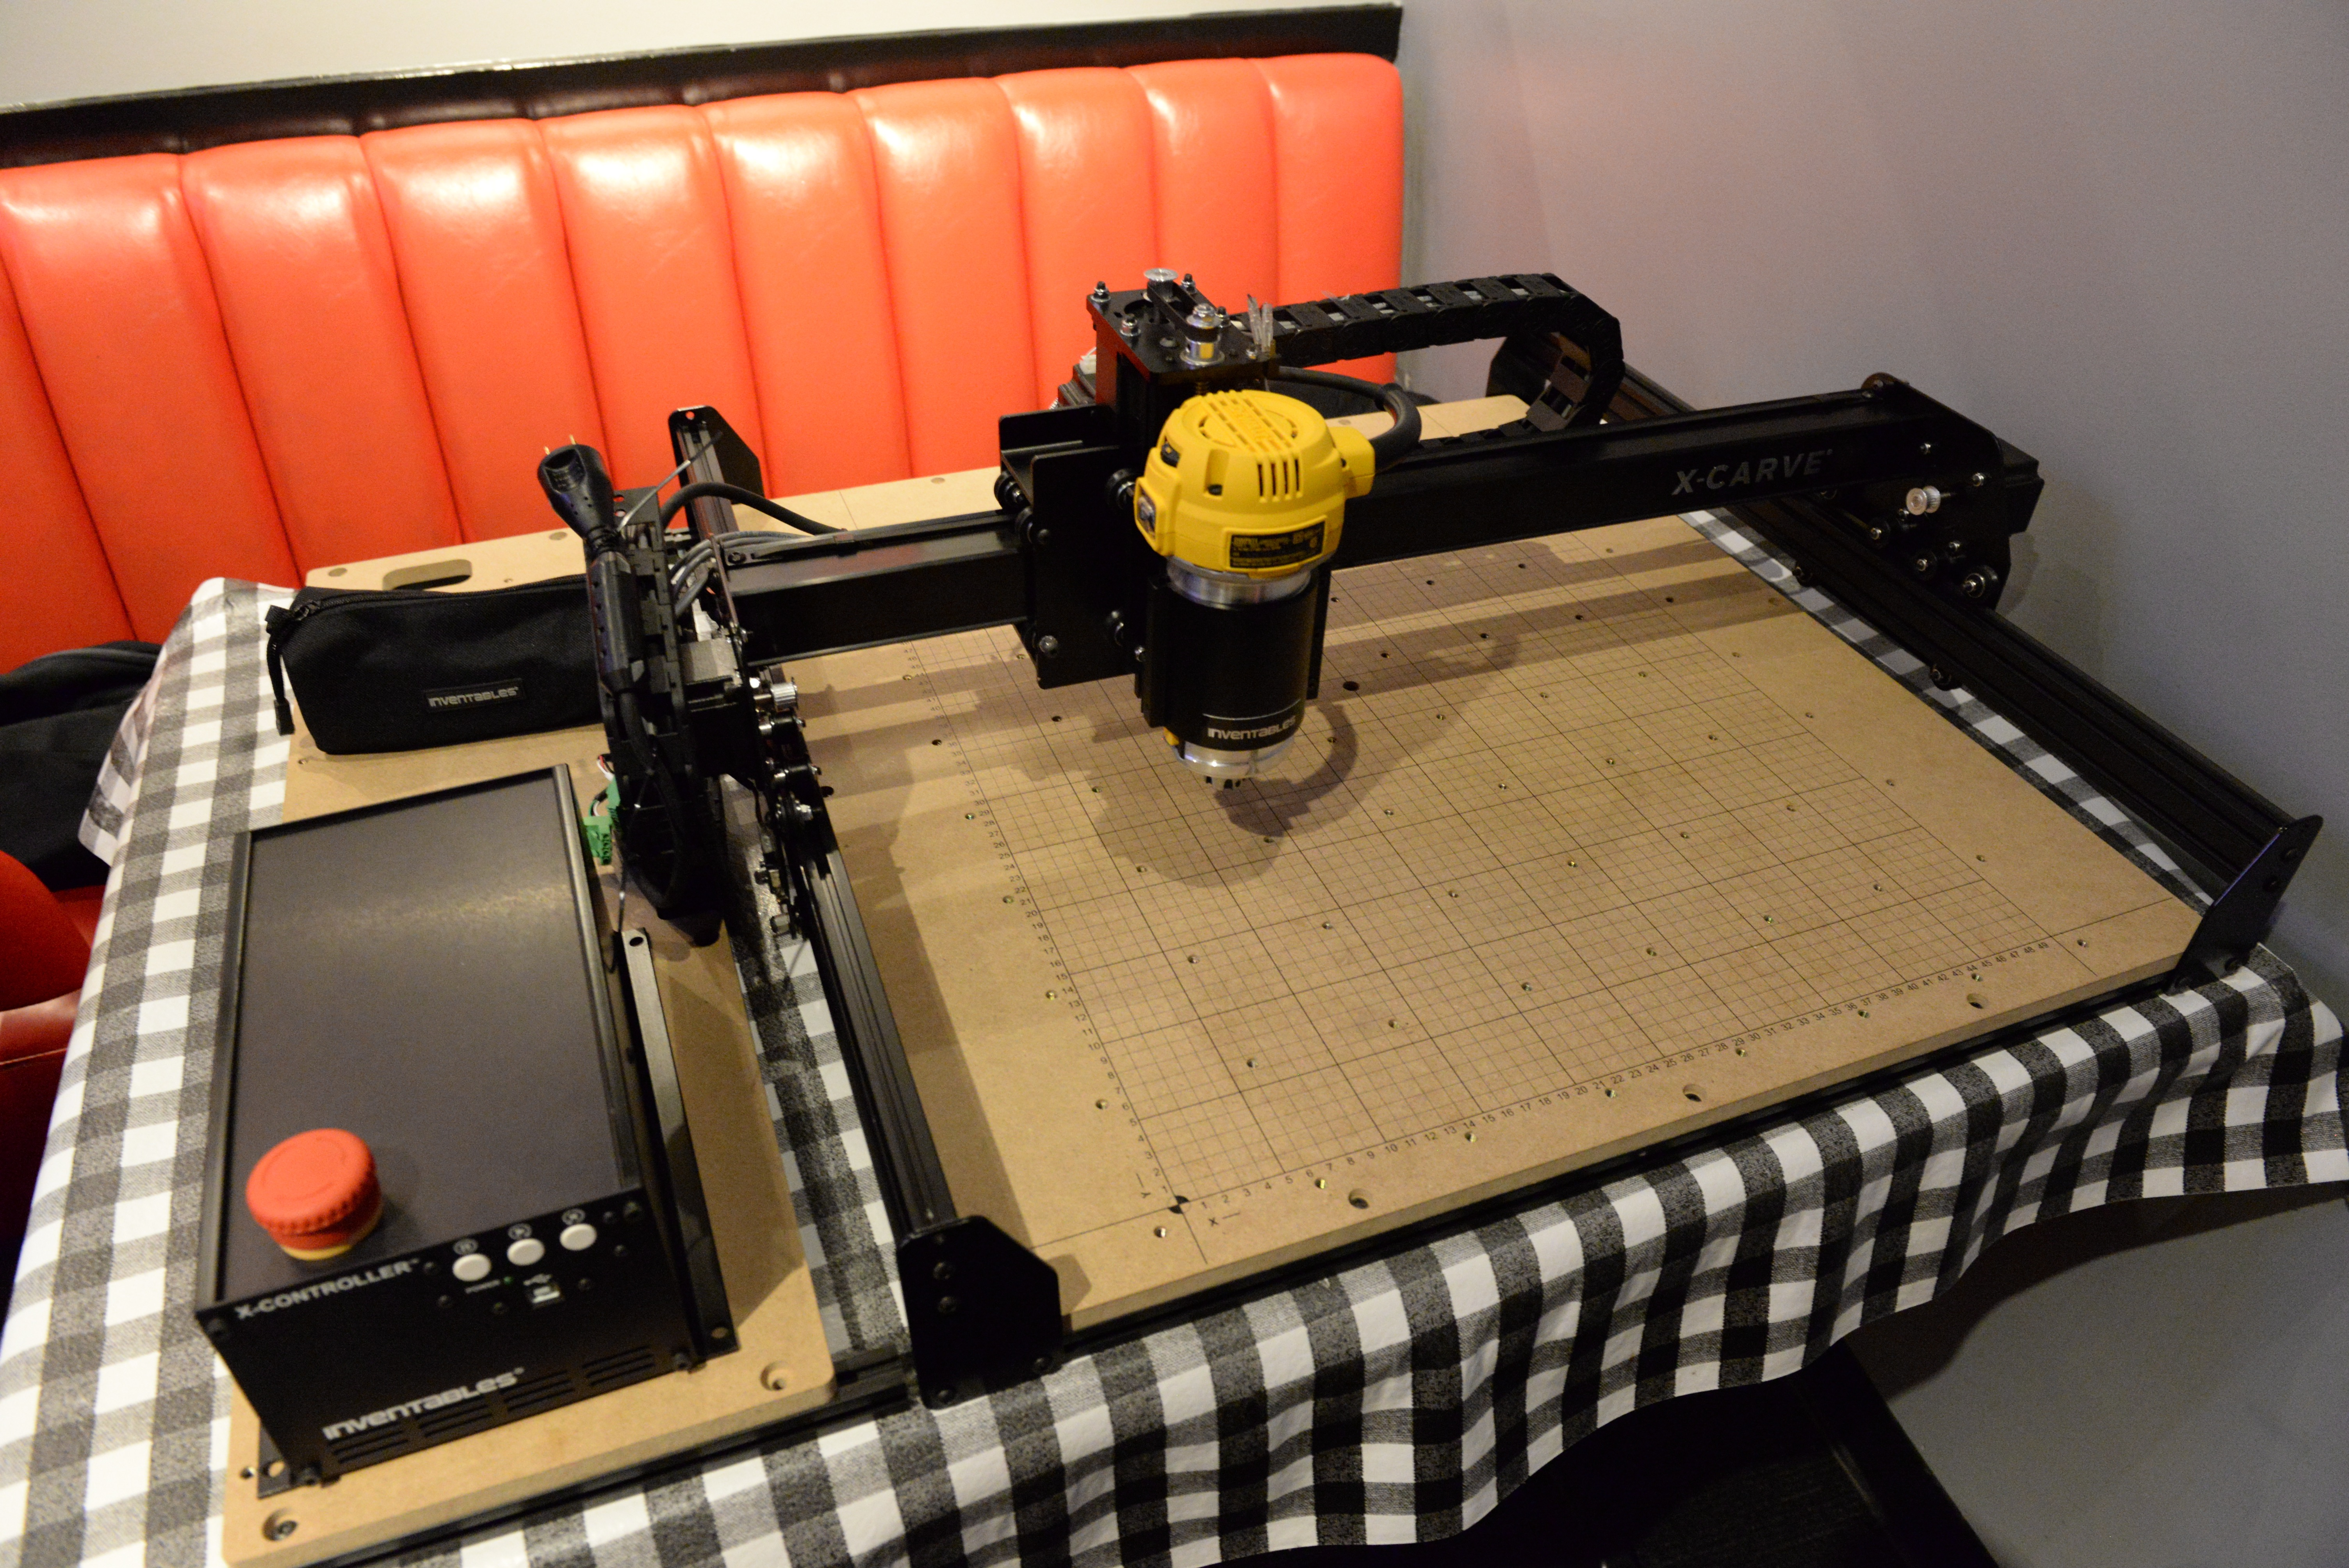 Is This a New X-Carve CNC Machine?